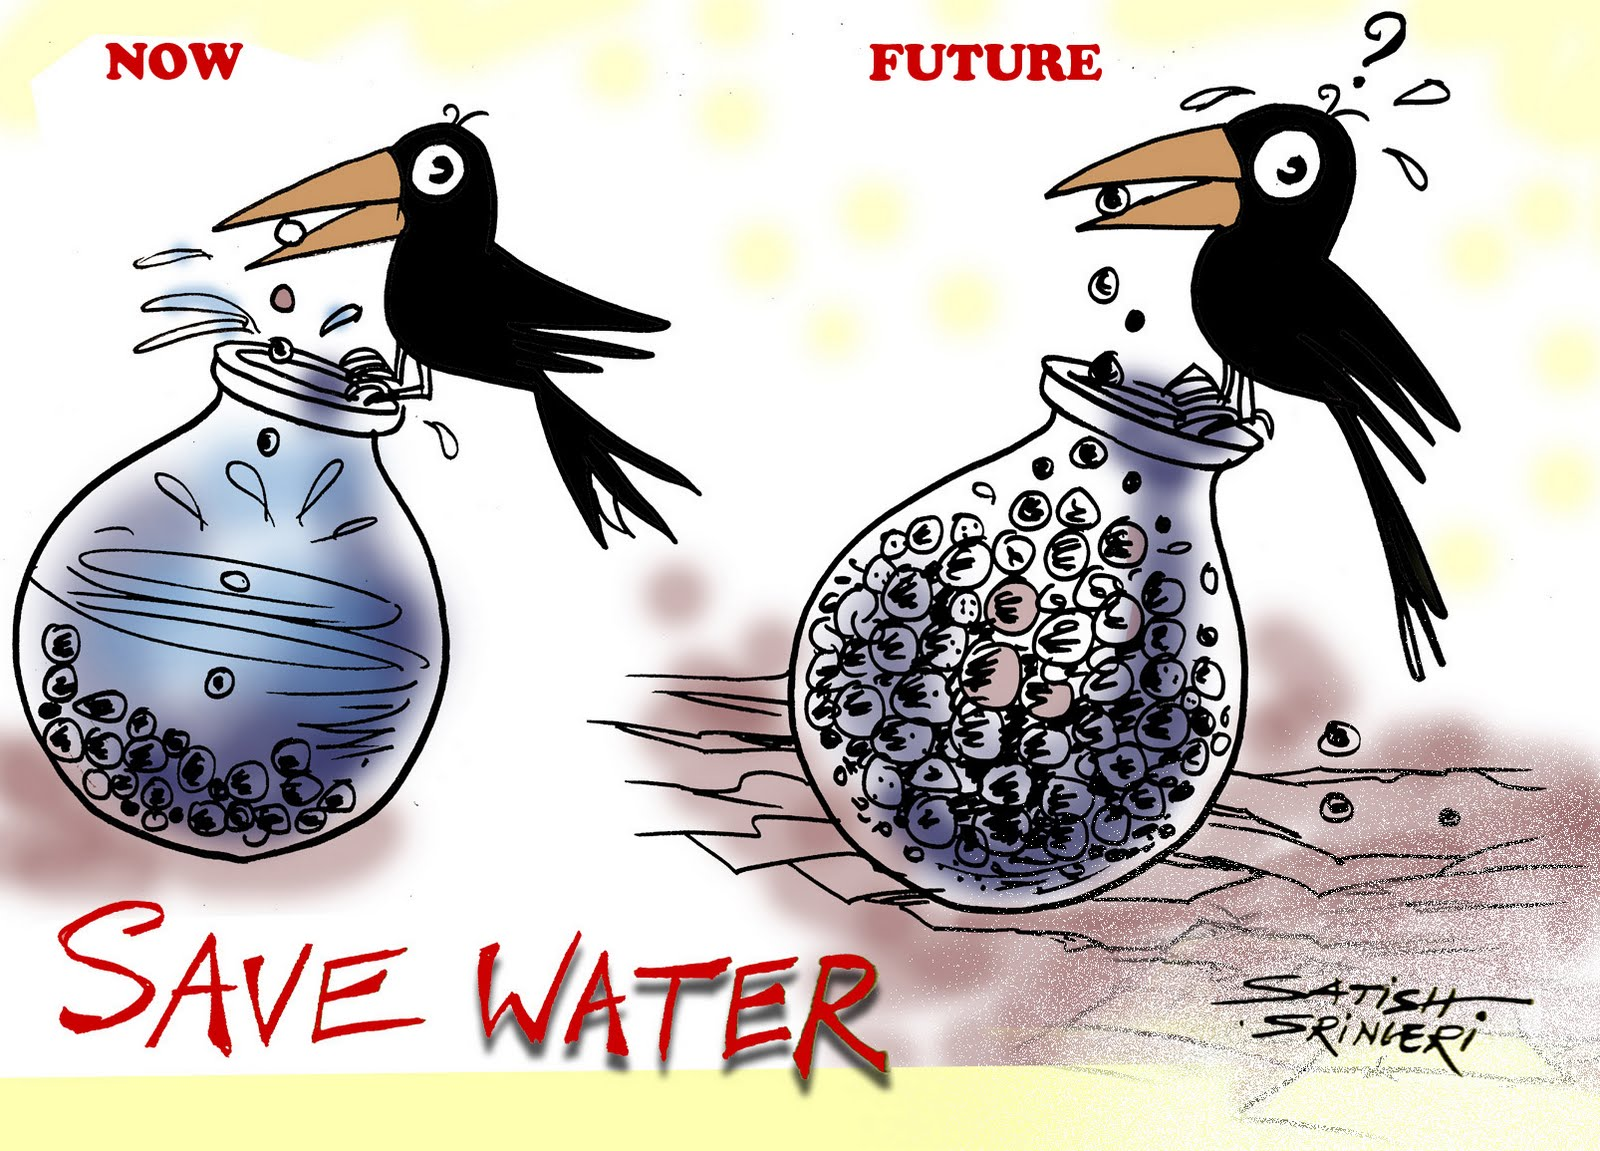 "essays on save water Save water ""water is a life"" not only the human being but also for the entire ecosystem water is precious we all depend on water for many purposes."